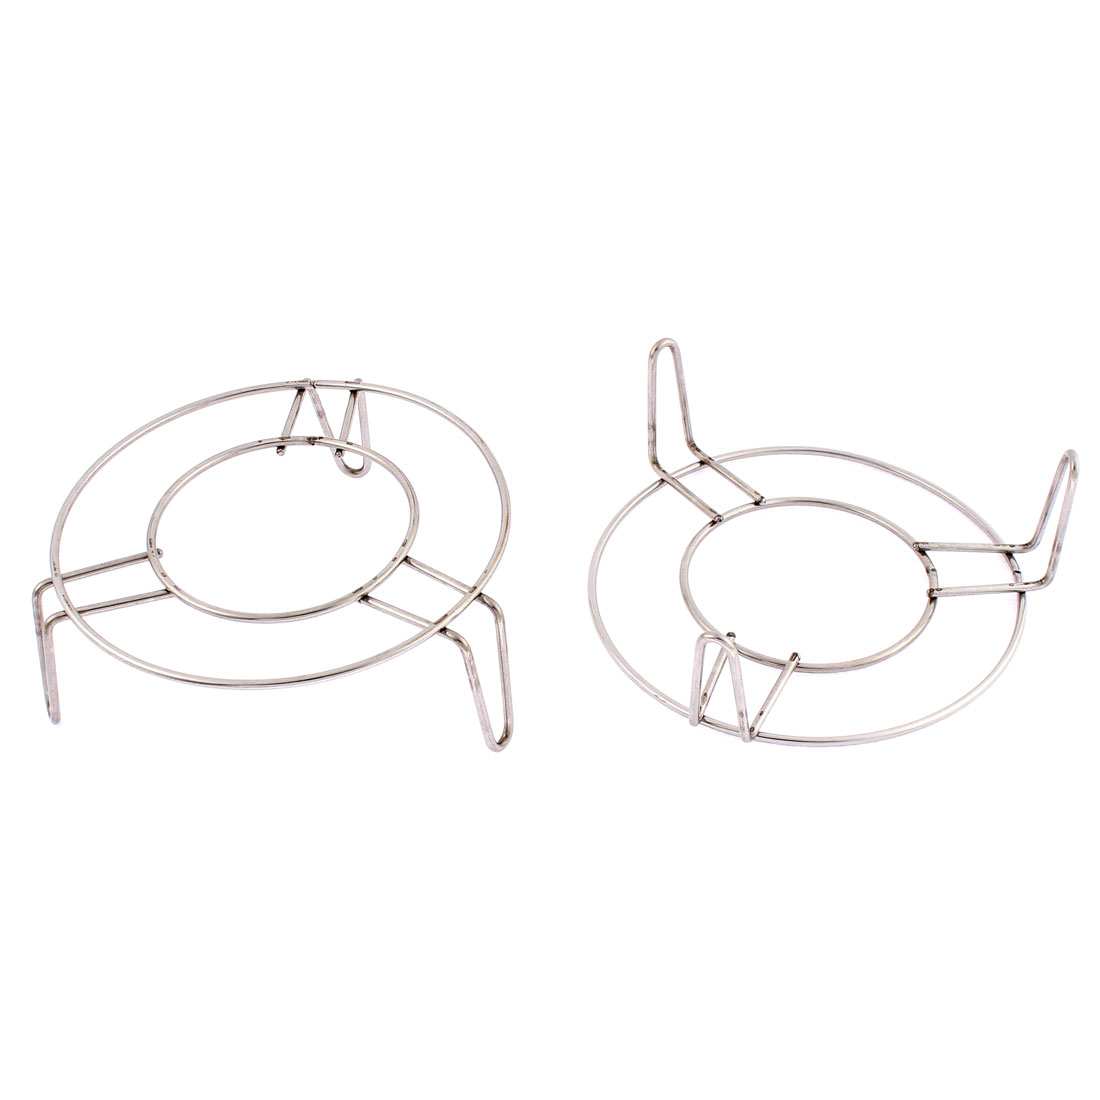 Stainless Steel Round Steaming Rack Stand 5 Inch x 2 Inch 2 Pcs